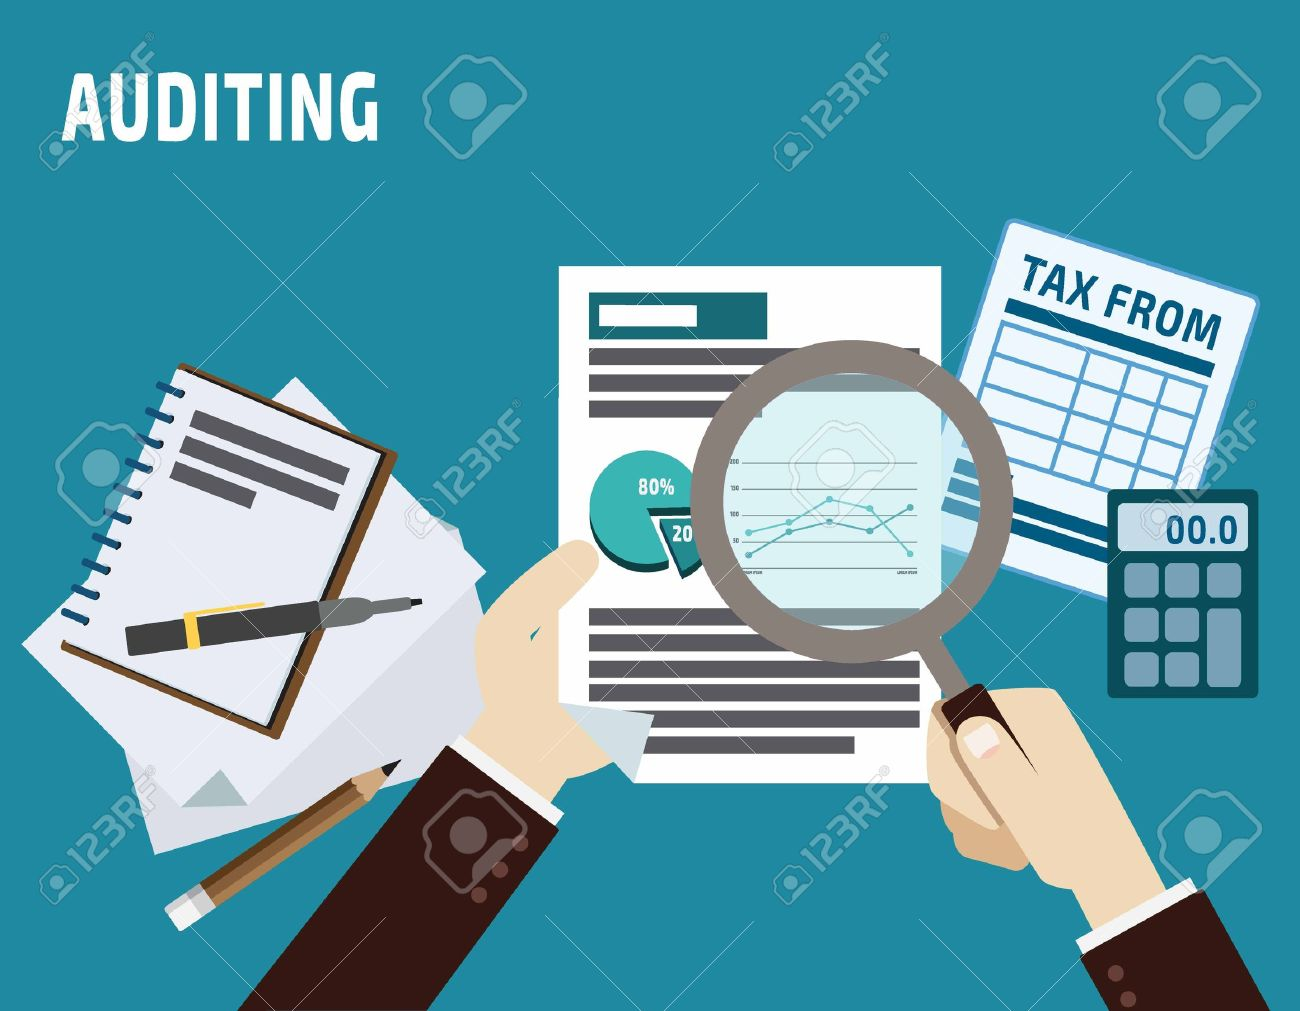 auditing. business concept.flat cute cartoon design illustration.isolated on blue background. - 54347851